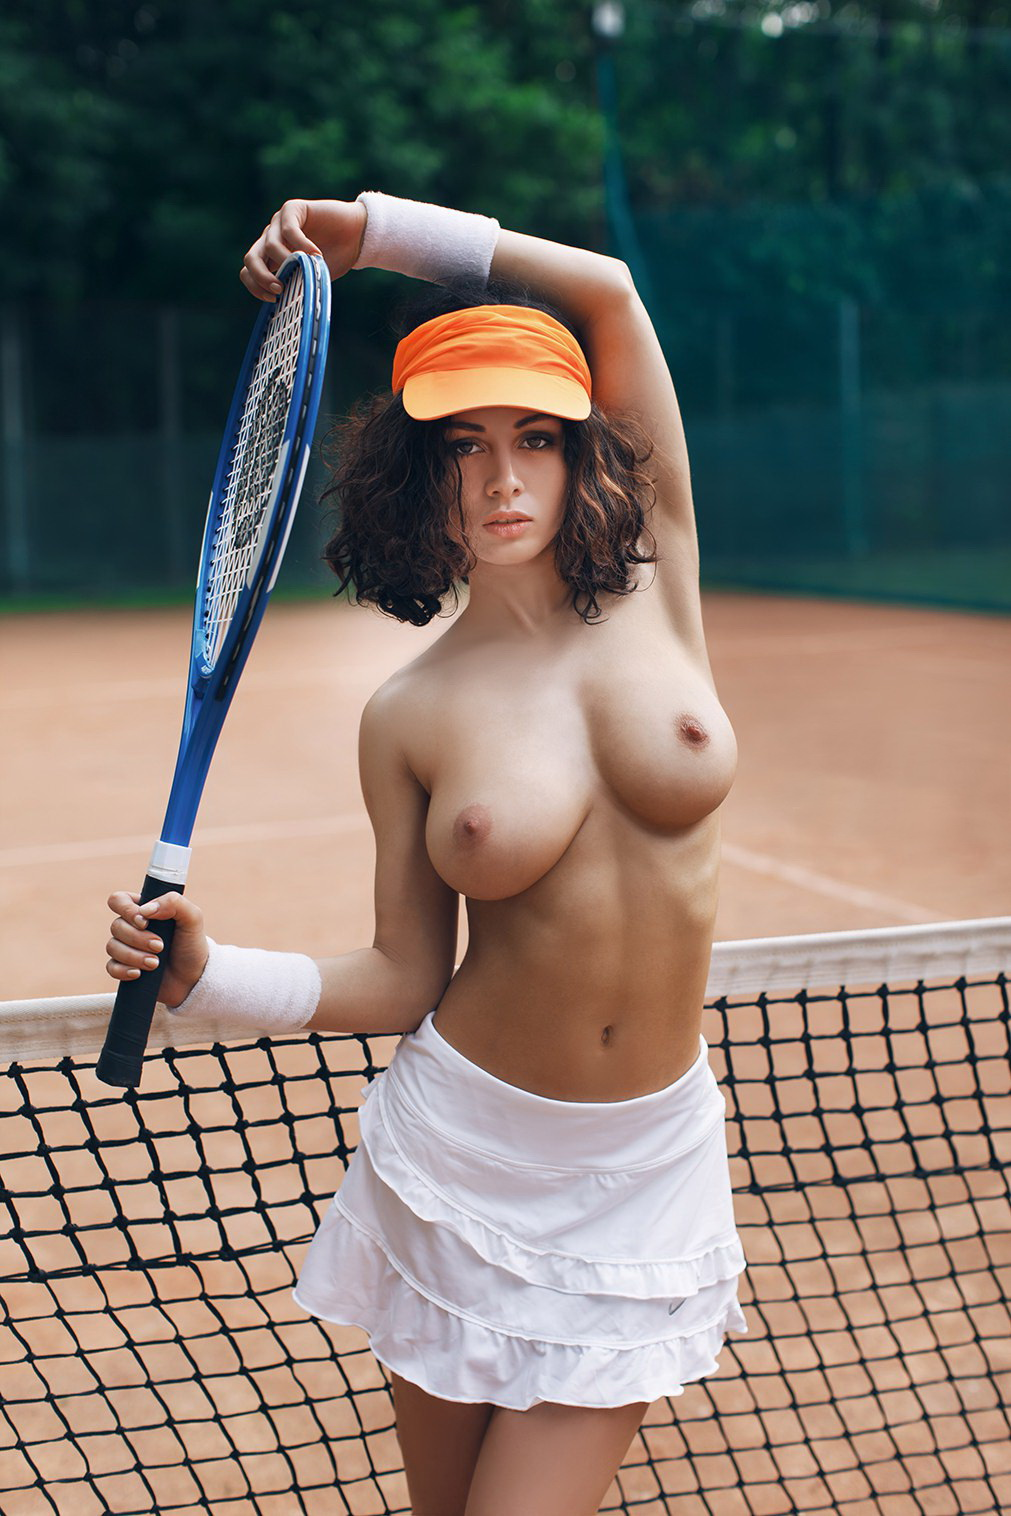 Professional tennis pussy, hot mature women on black